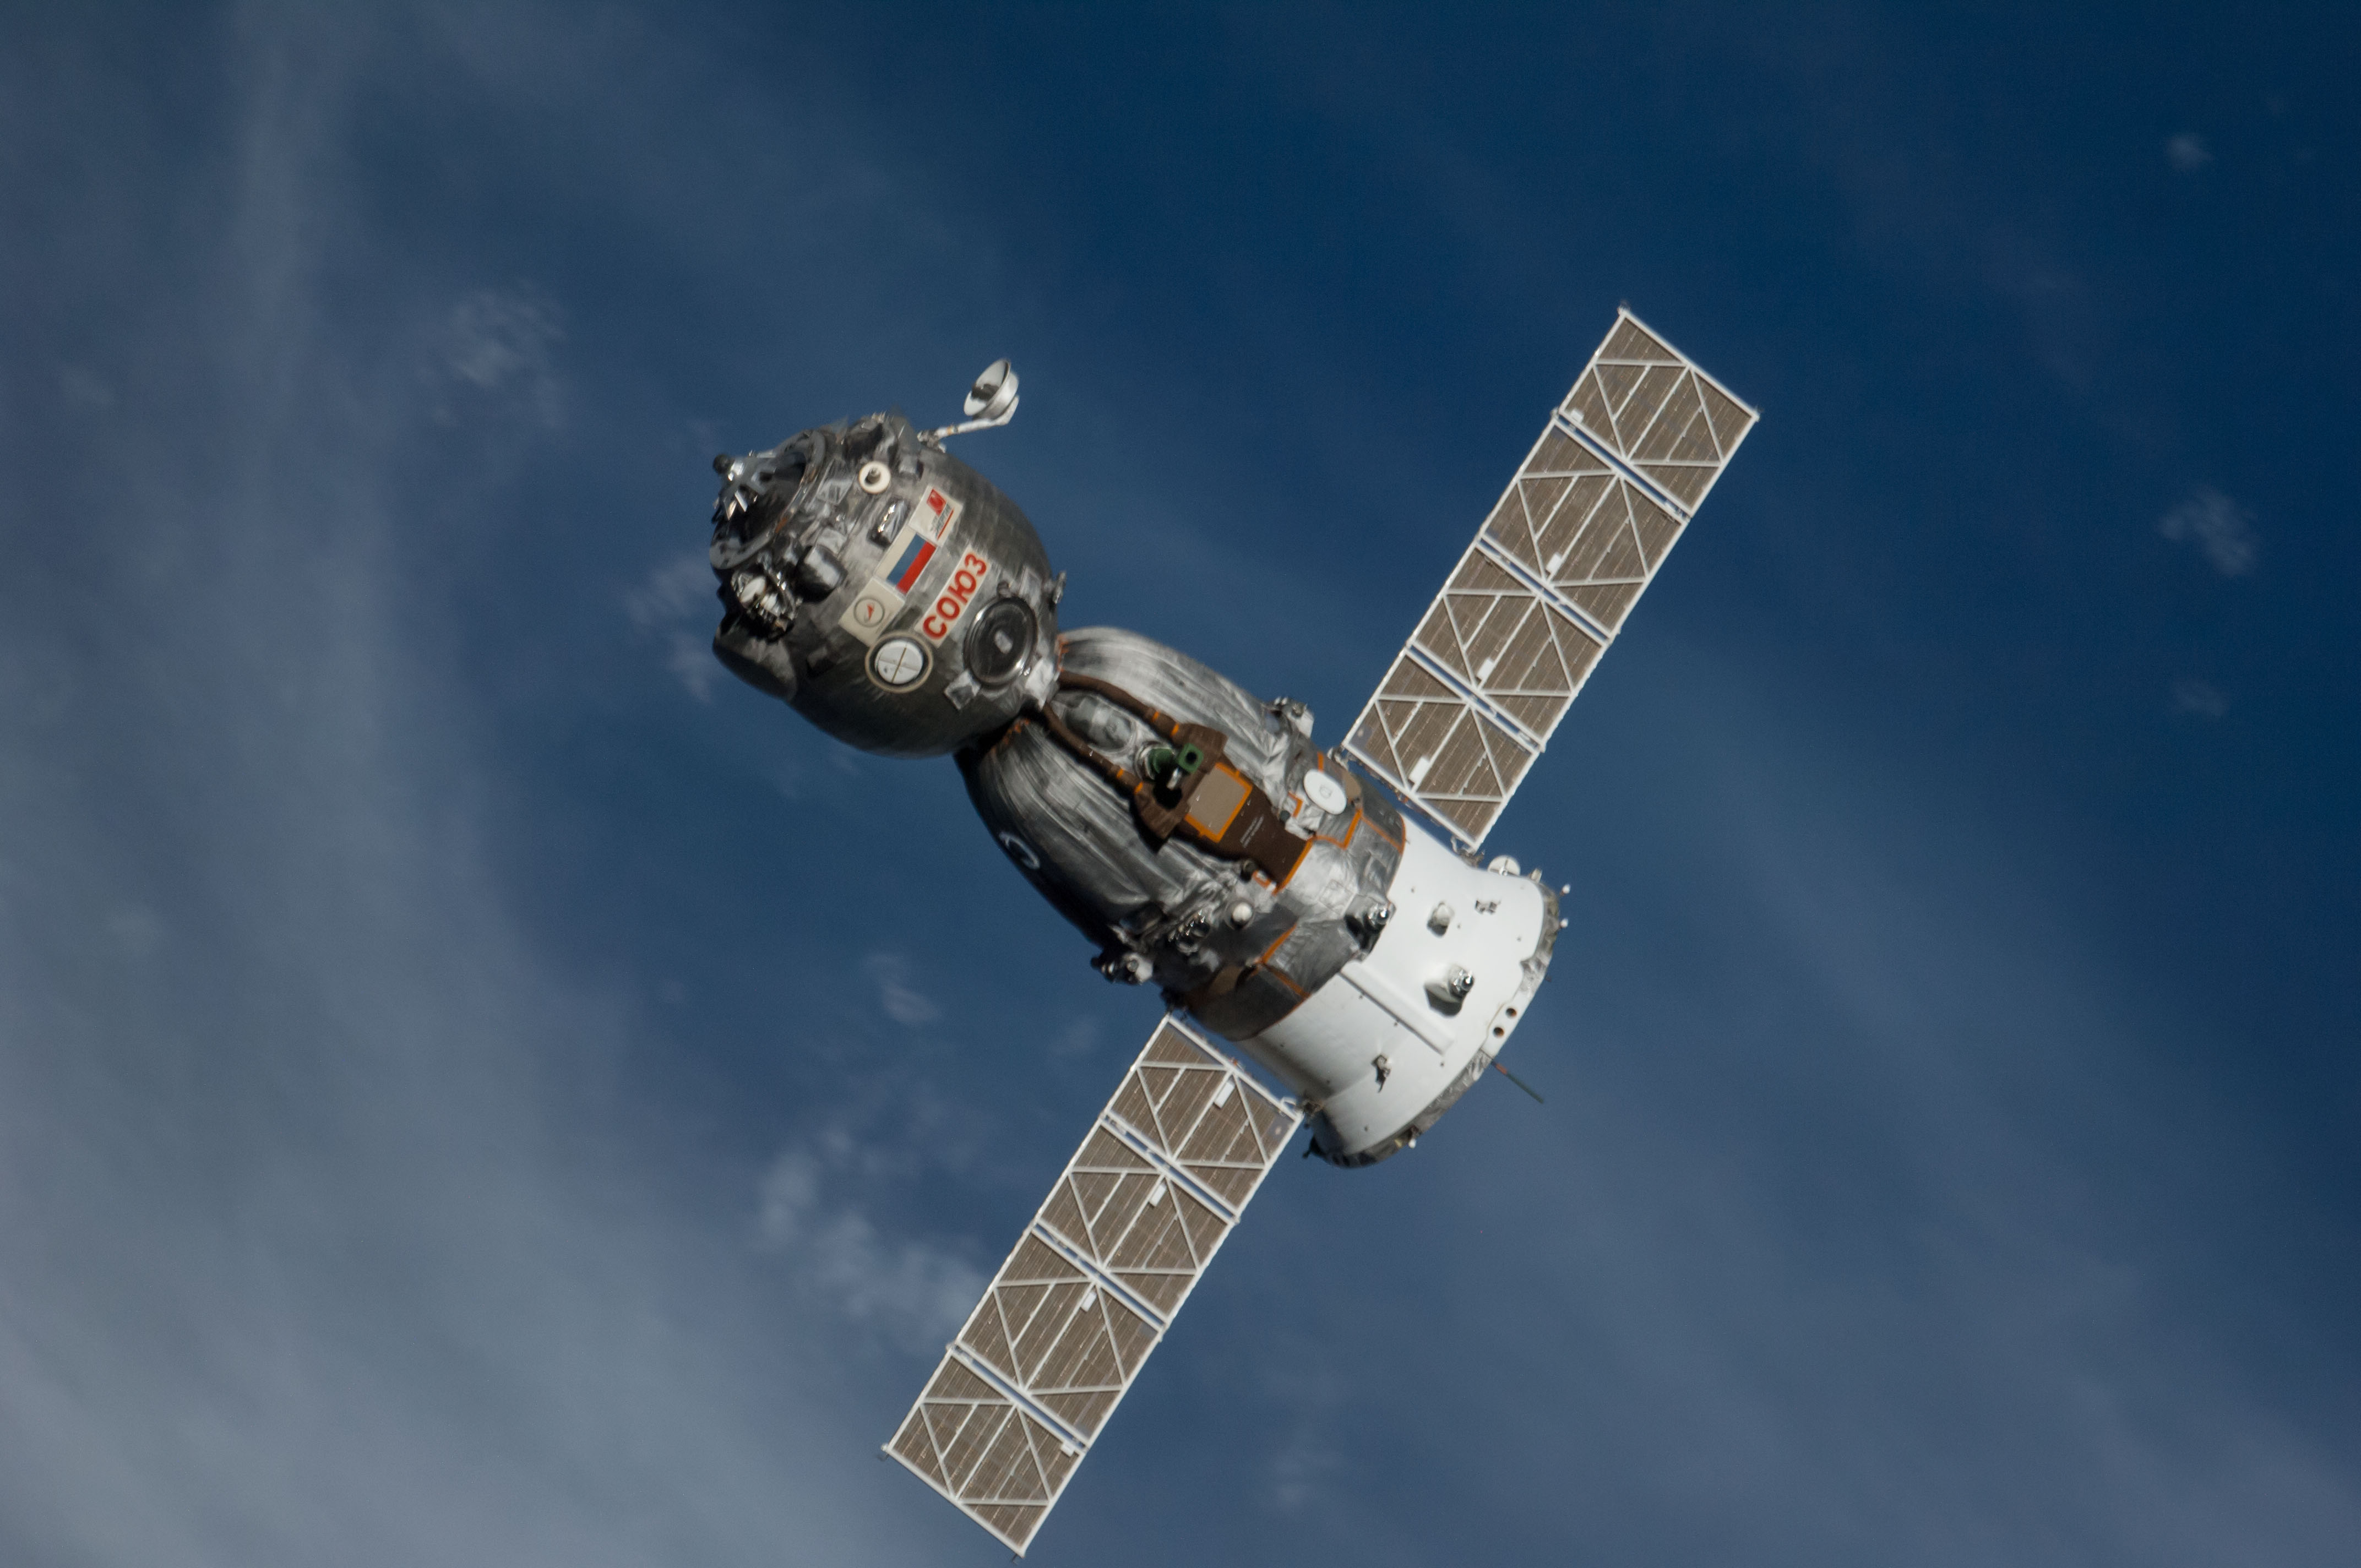 soyuz spacecraft tma 06m - photo #36